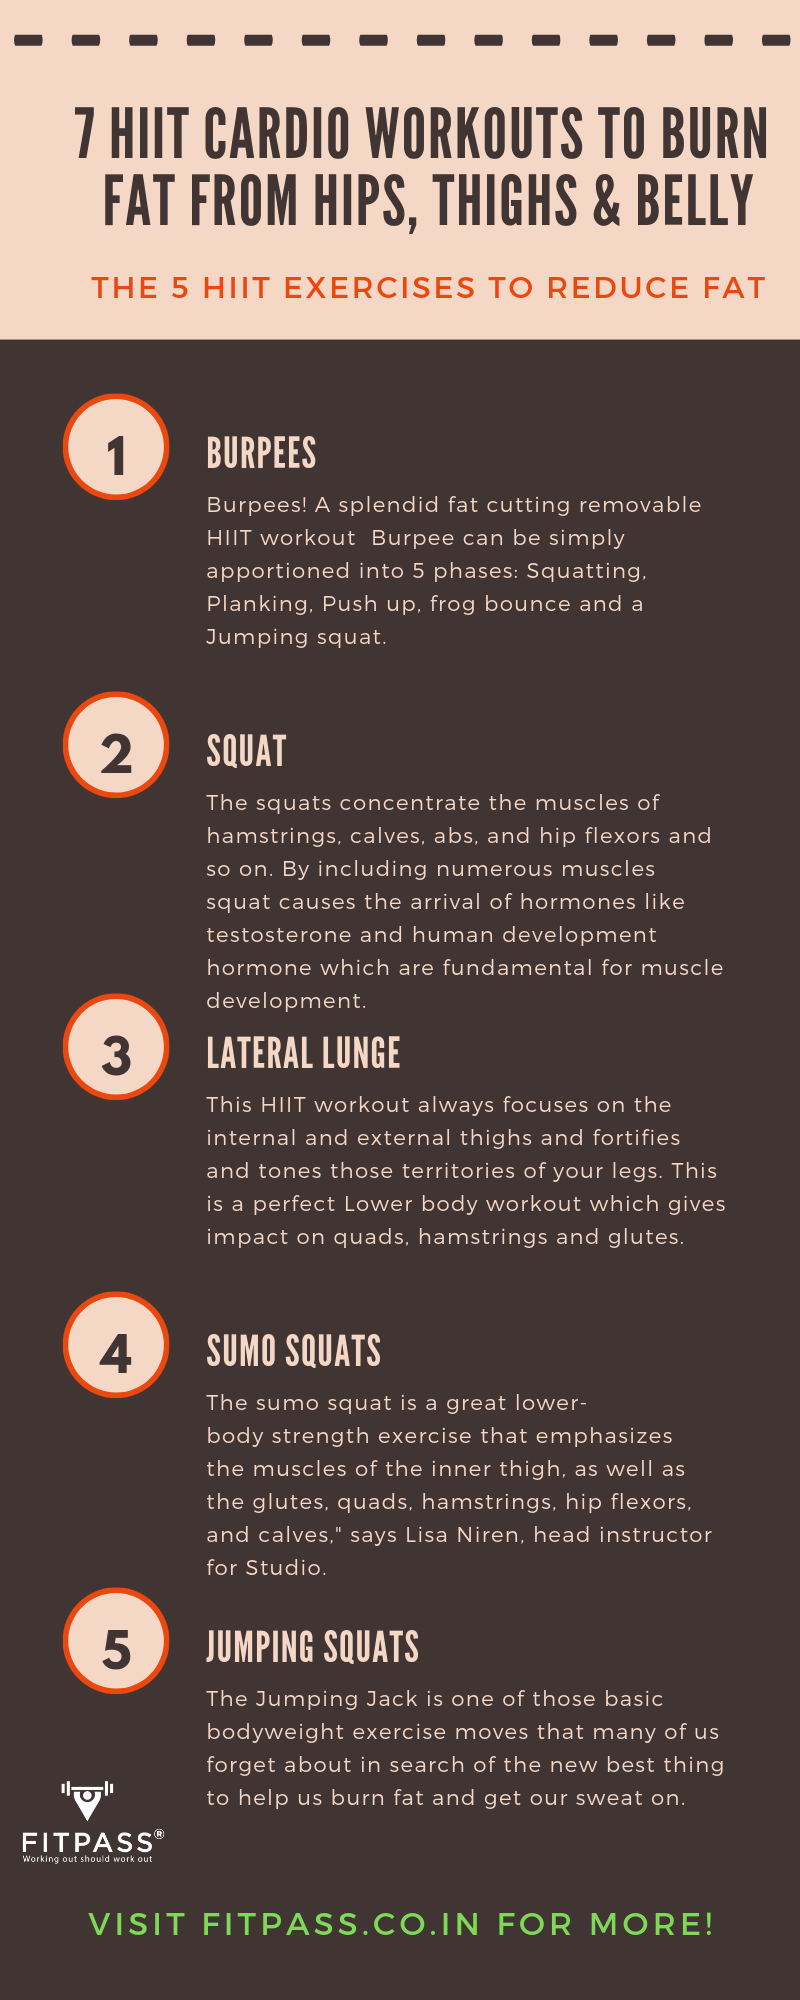 7 HIIT Cardio Workouts to reduce fat